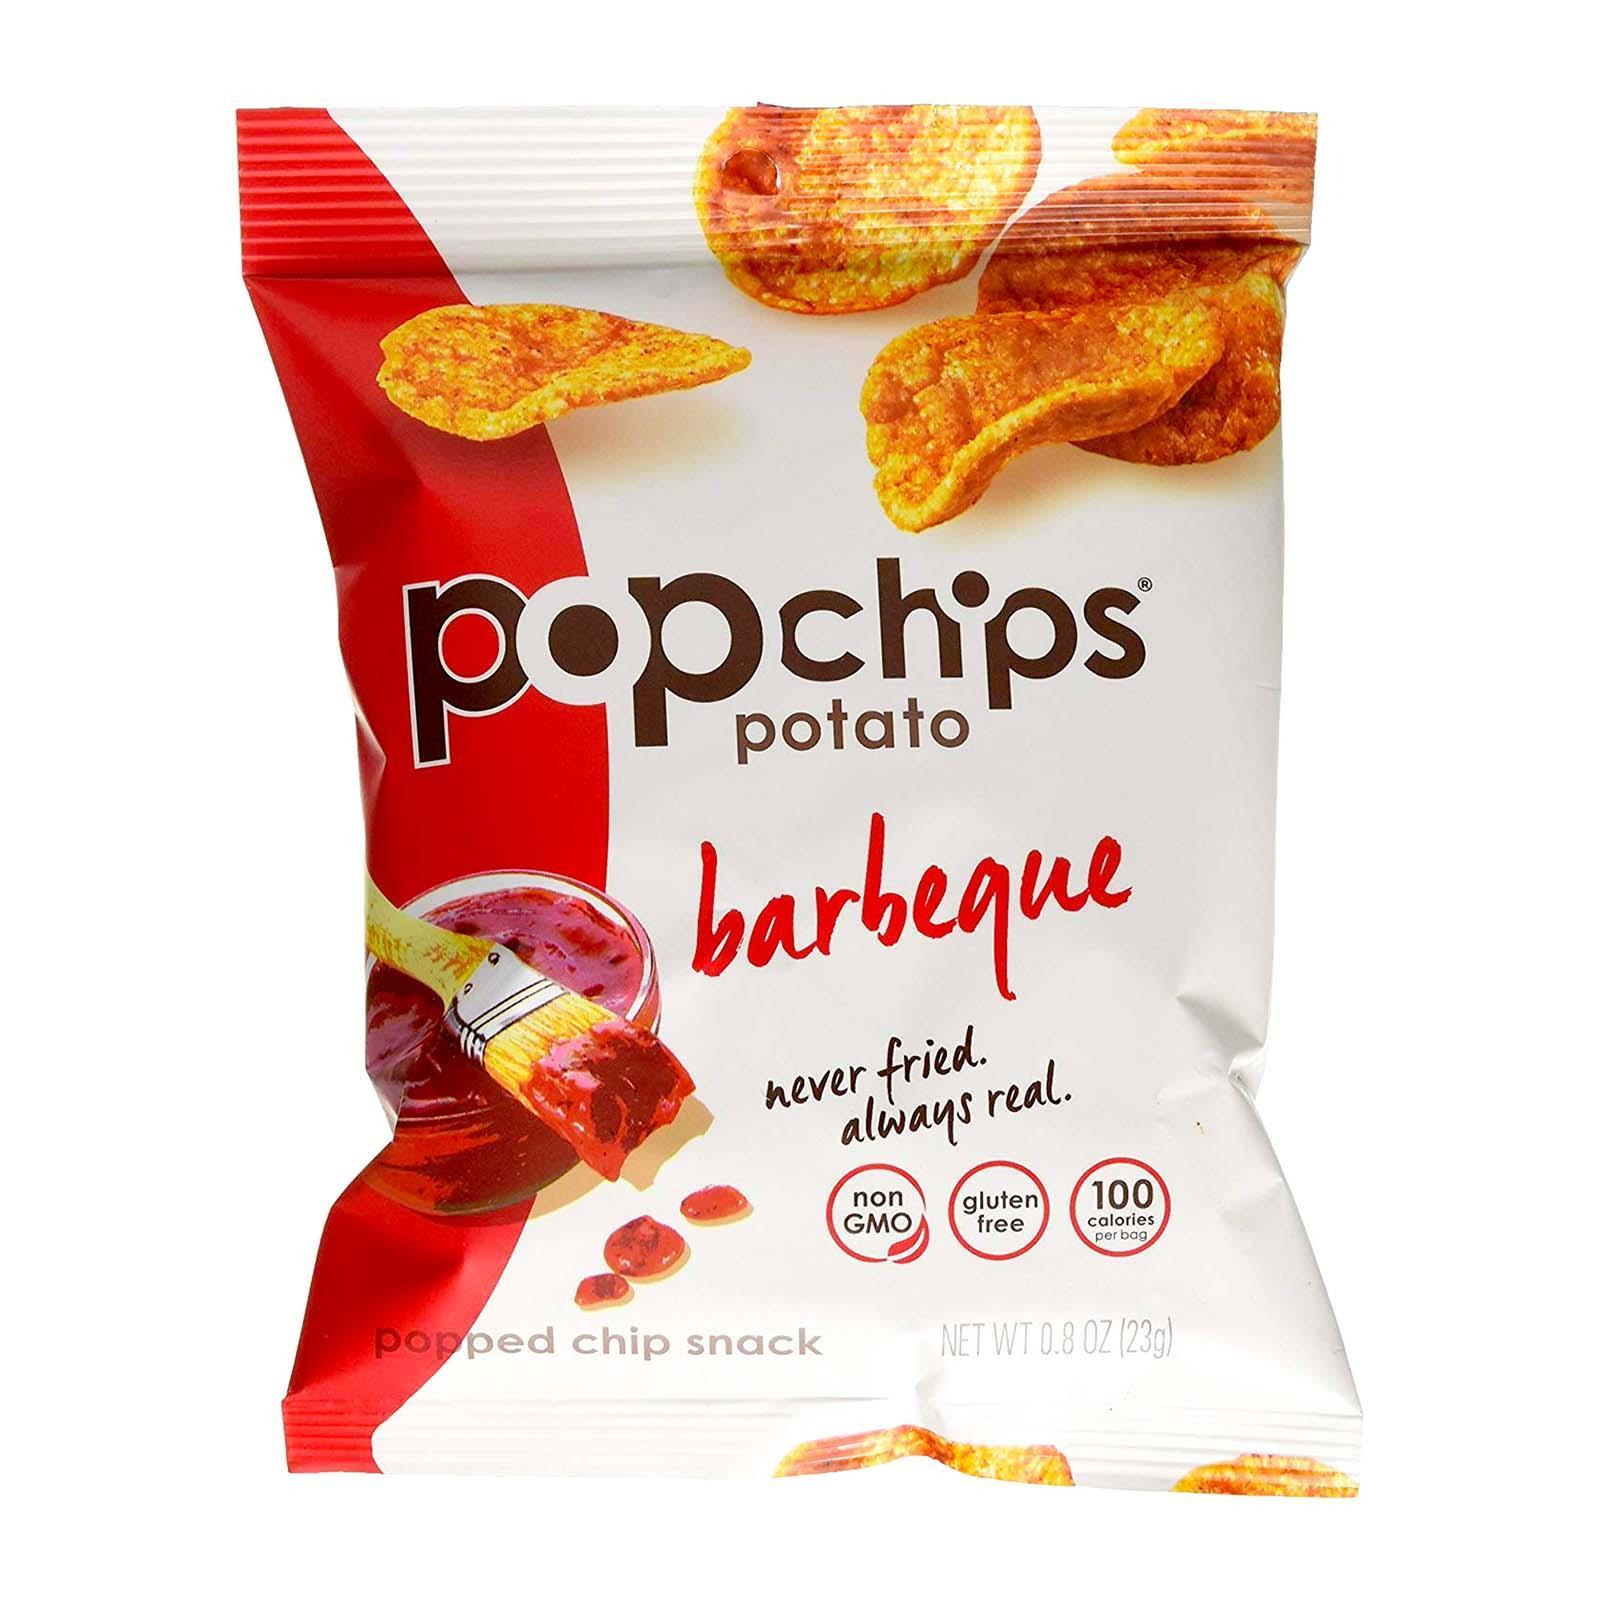 Popchips Barbeque Potatos - By Wholesome Harvest